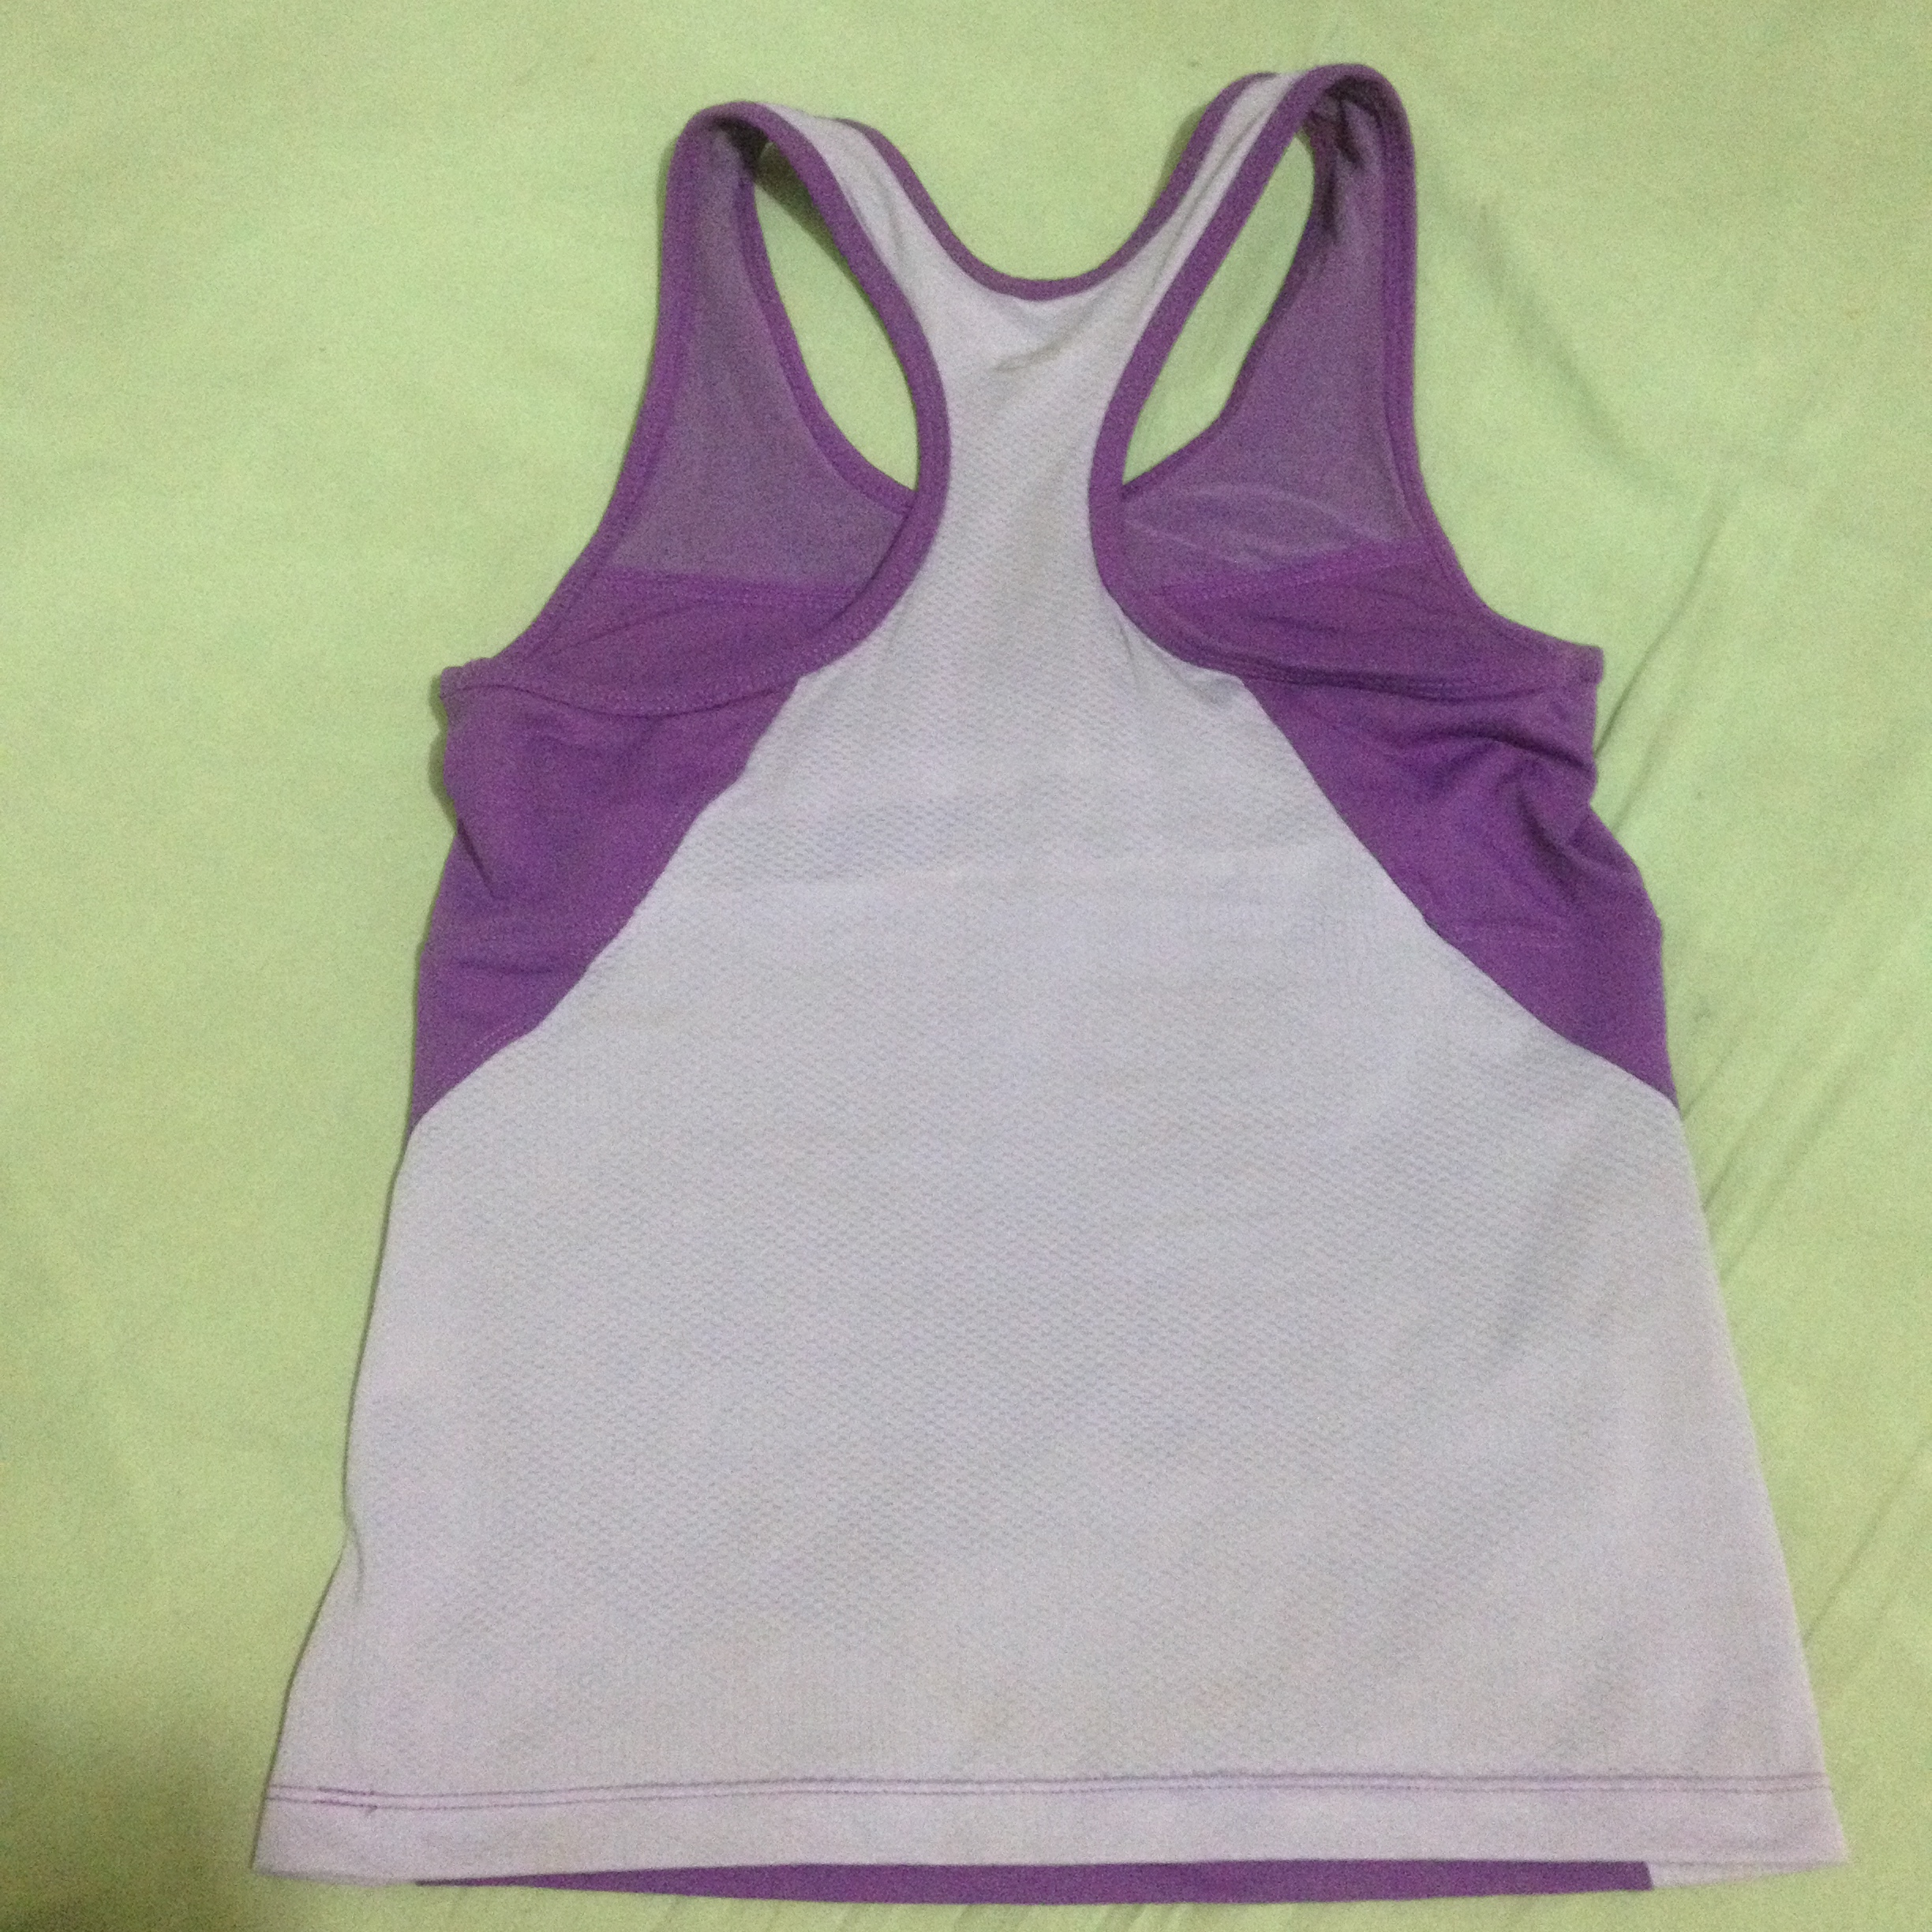 Gym T Shirt With Built In Top Available For Free Online